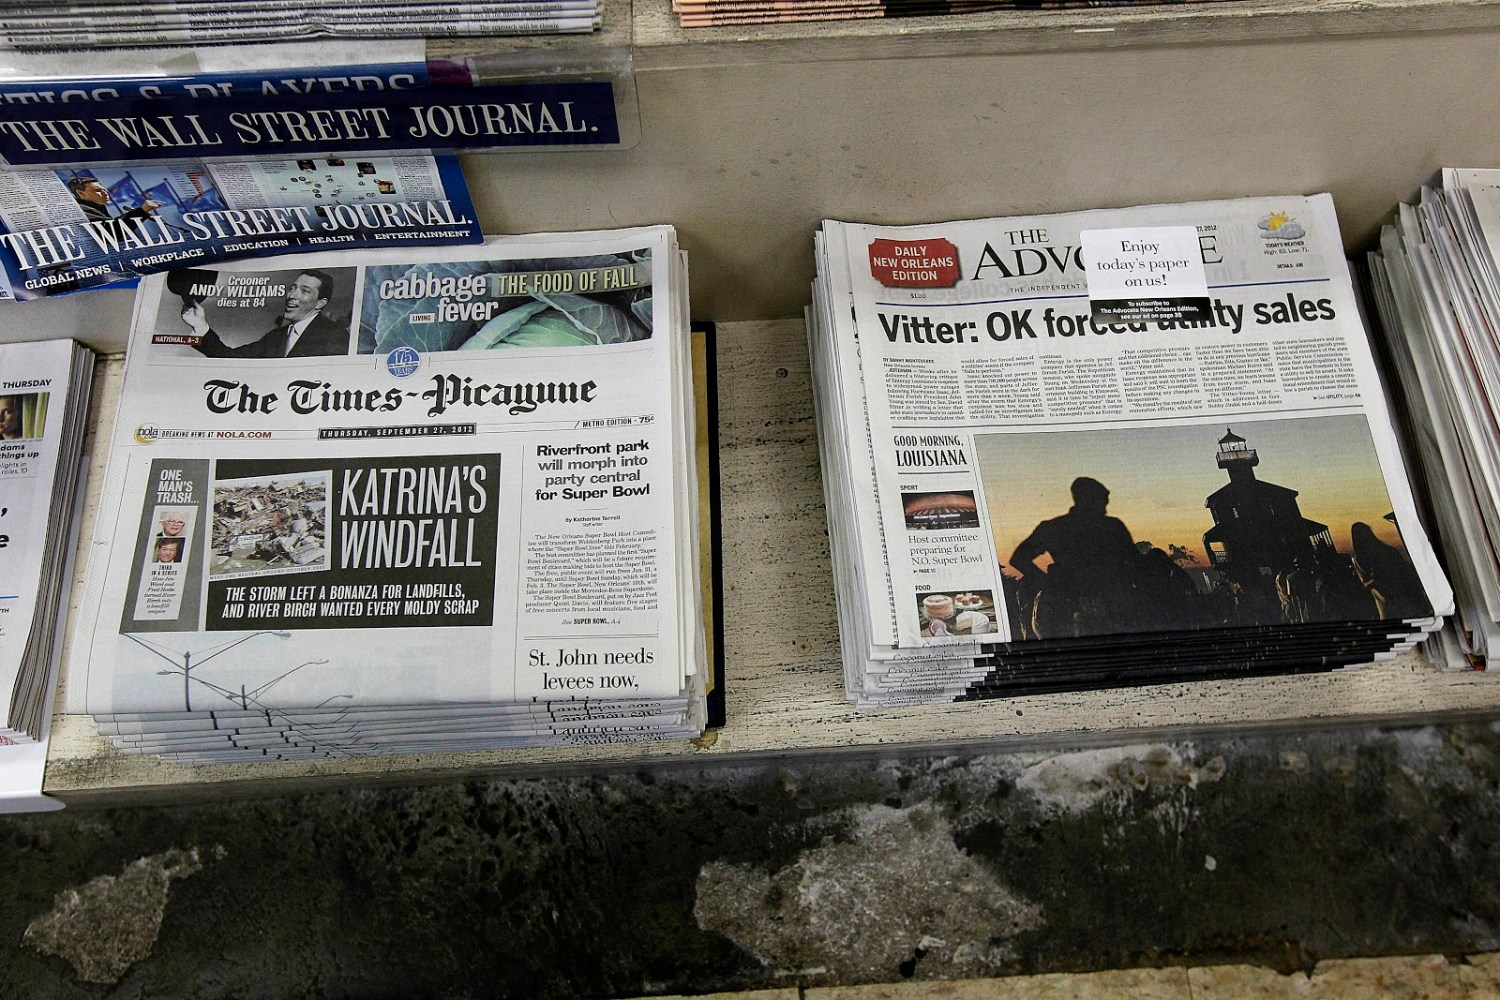 An in-depth look at the newspaper shakeup in New Orleans, plus the San Francisco seizure and free iPads for Arkansas Democrat-Gazette subscribers